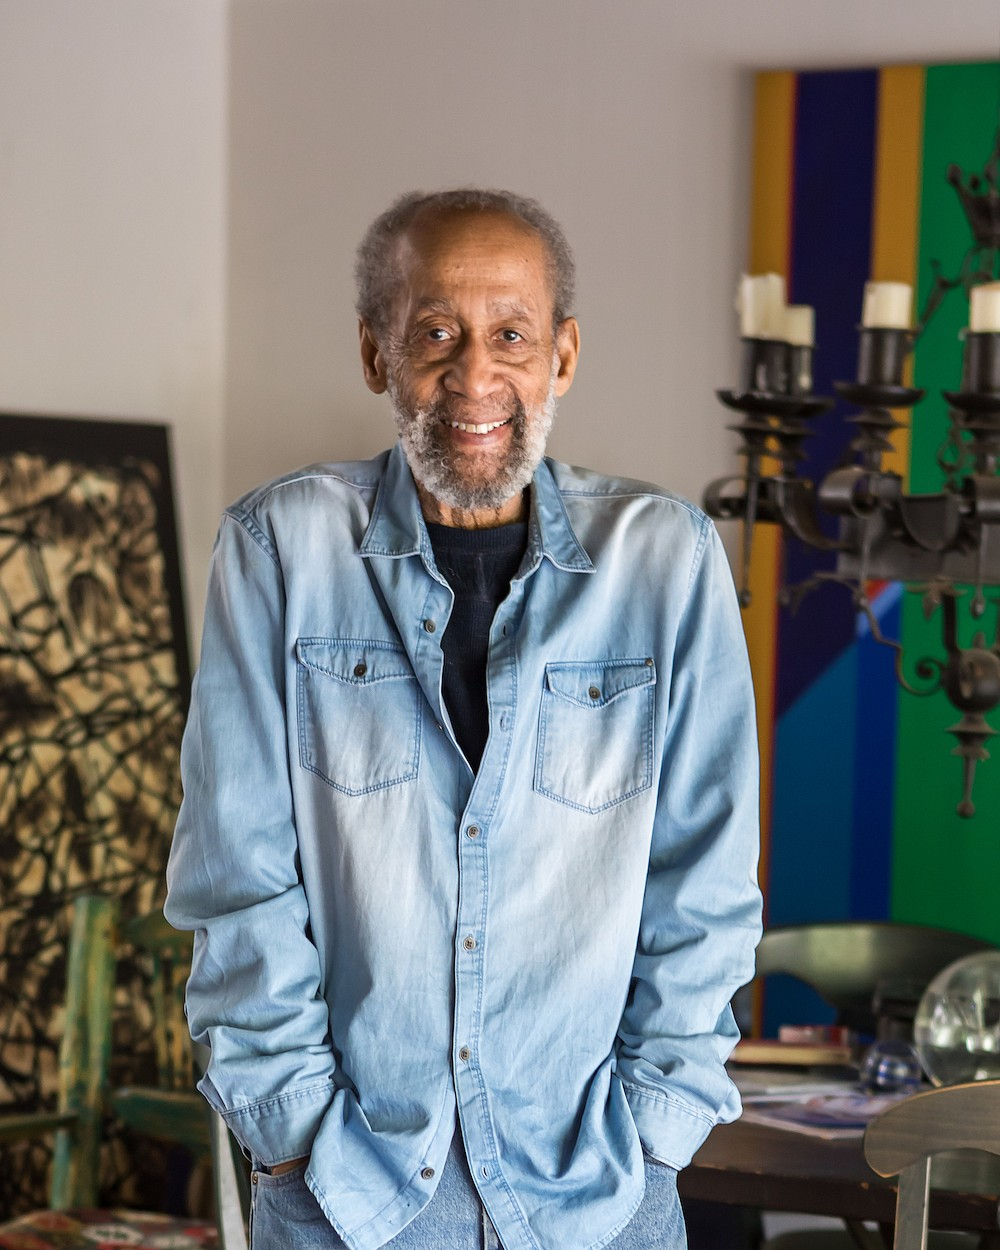 Artist Frank Wimberley, at 94, is still full of surprises